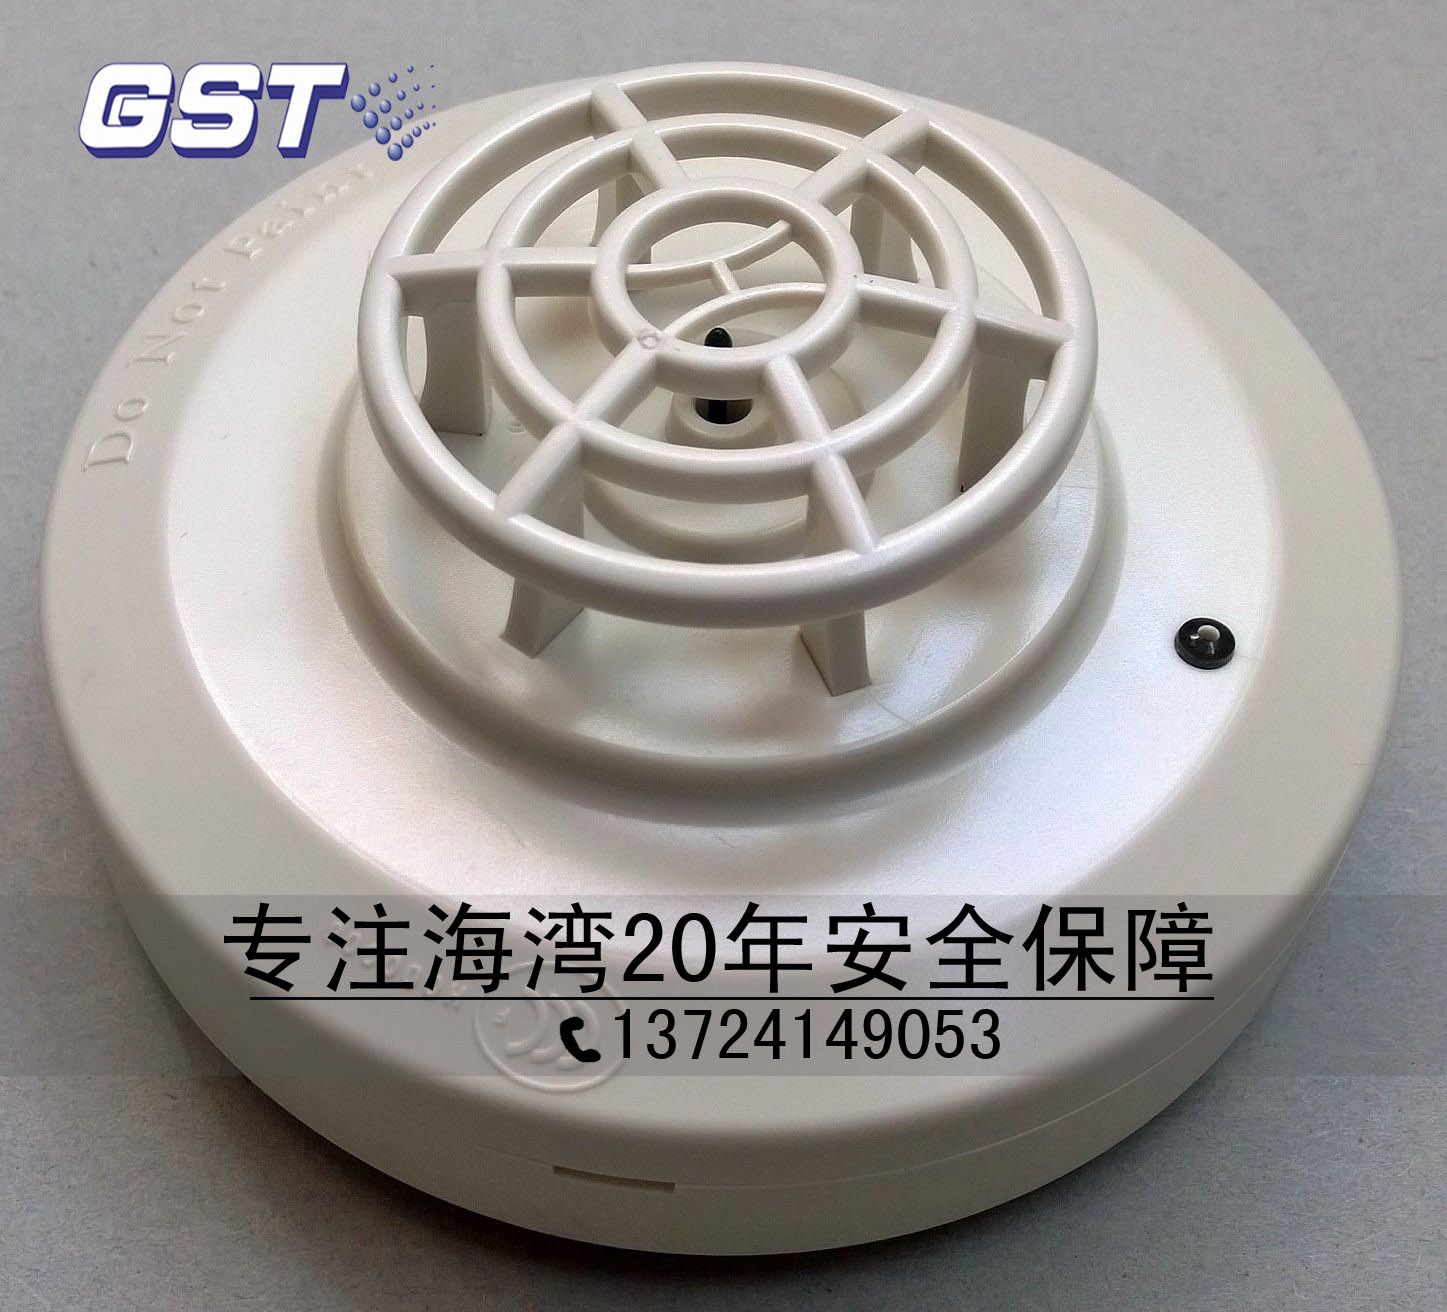 The temperature sensing GST-JTW-ZCD-G3N point type heat fire detector Bay temperature sensing G3N<br>